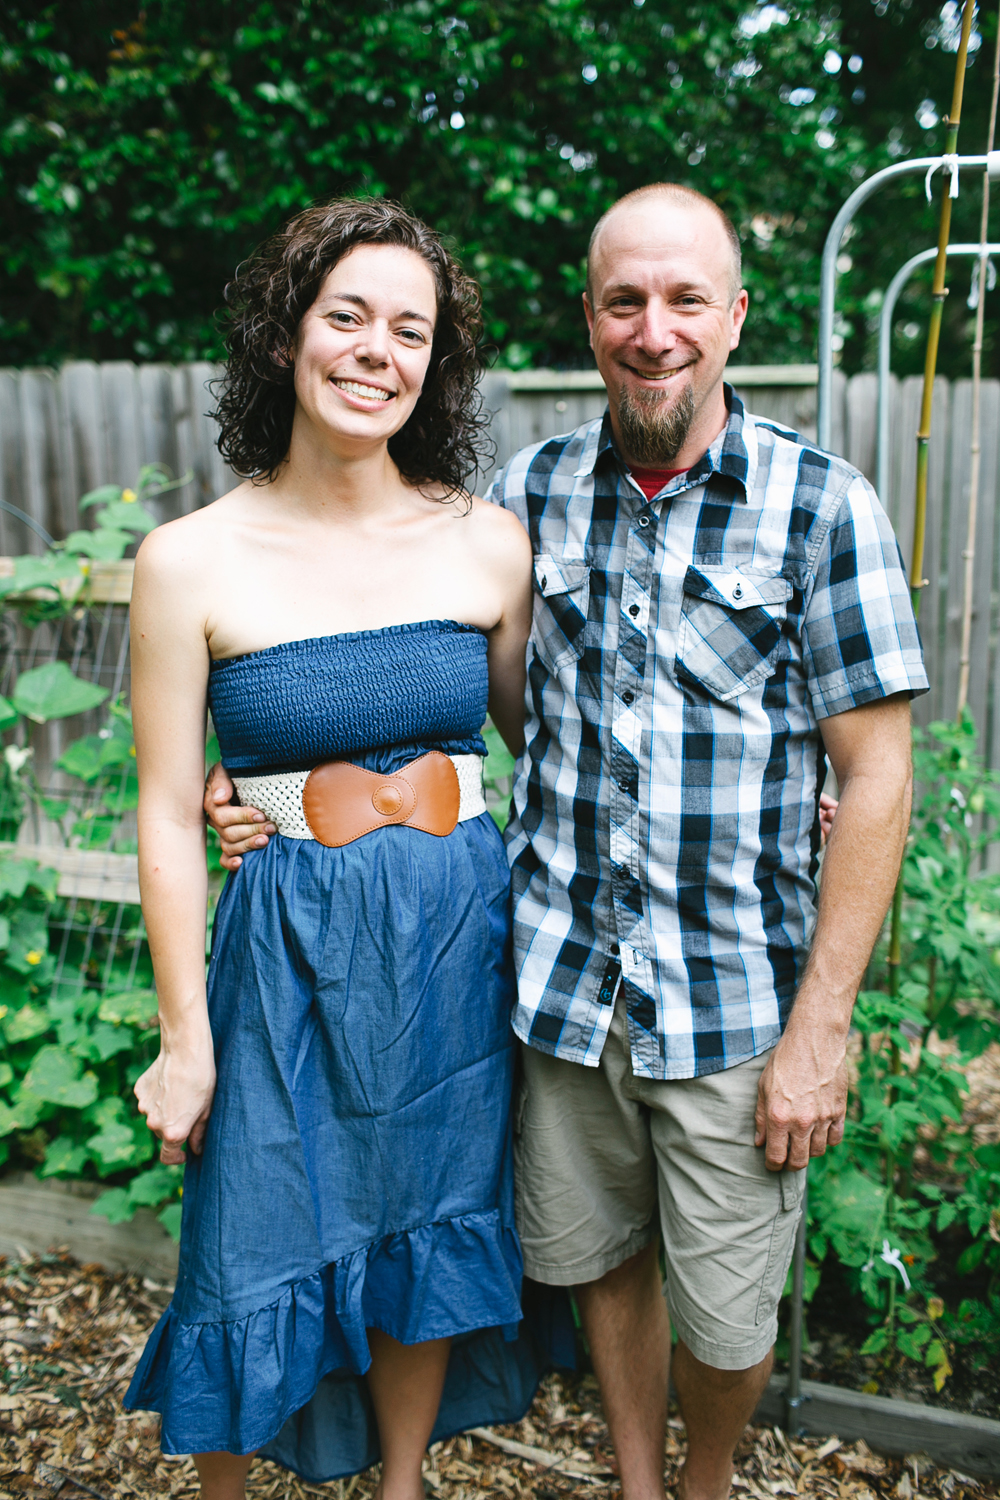 Homespun ATL Garden Dinner June 2013 Atlanta, GA Photography by Rachel Iliadis_Web090.jpg